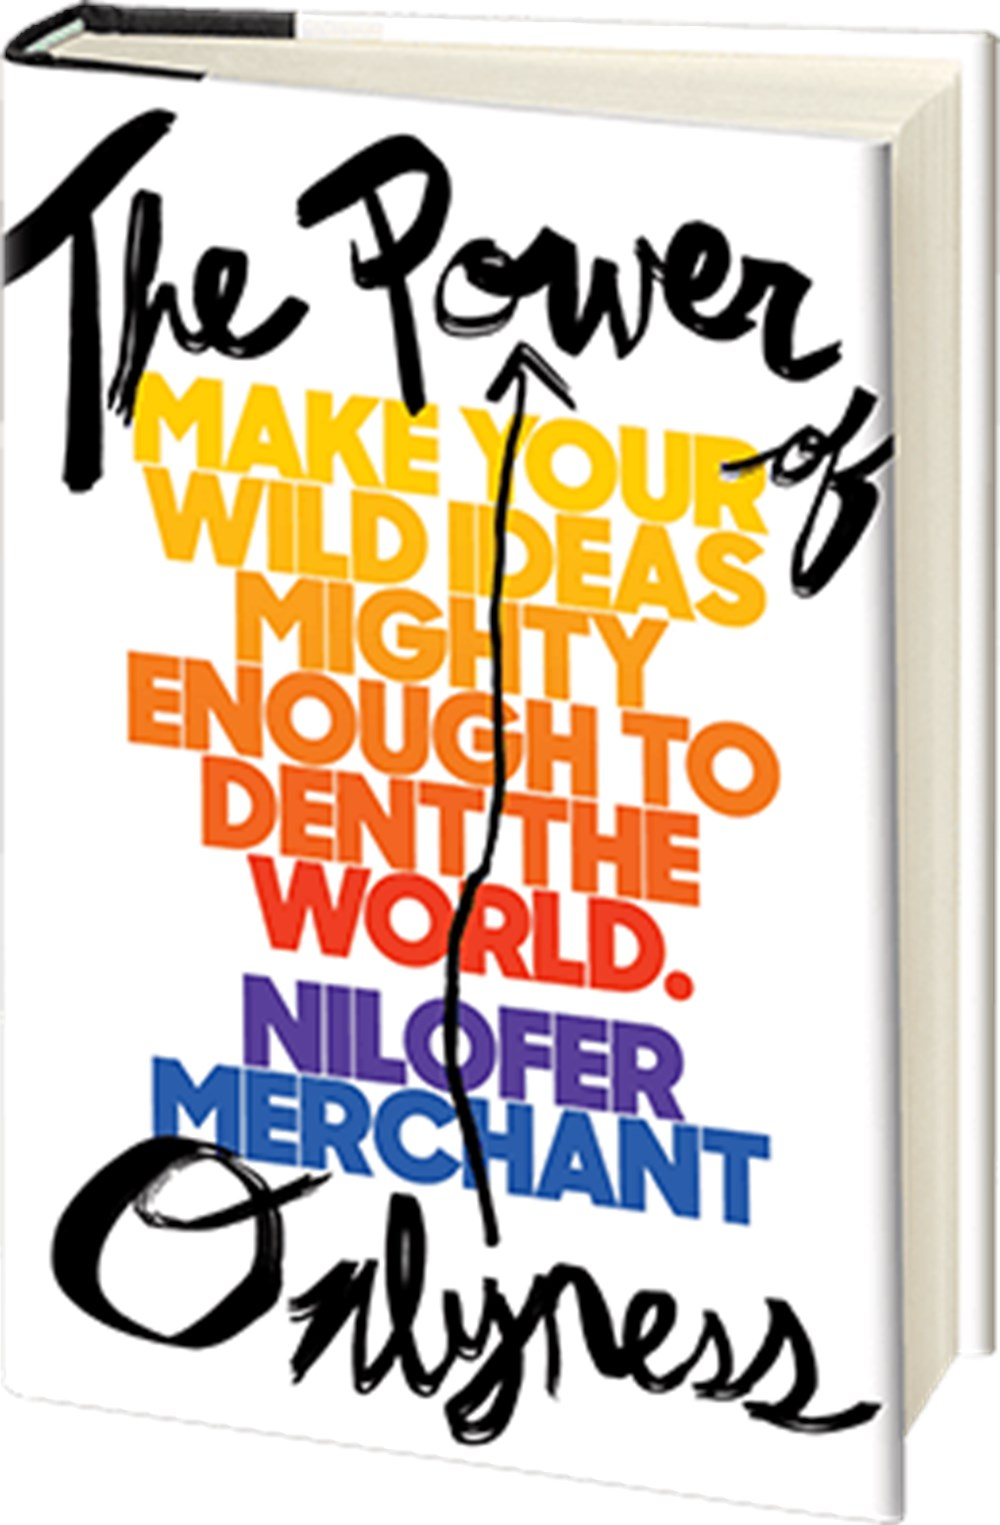 Power of Onlyness Make Your Wild Ideas Mighty Enough to Dent the World